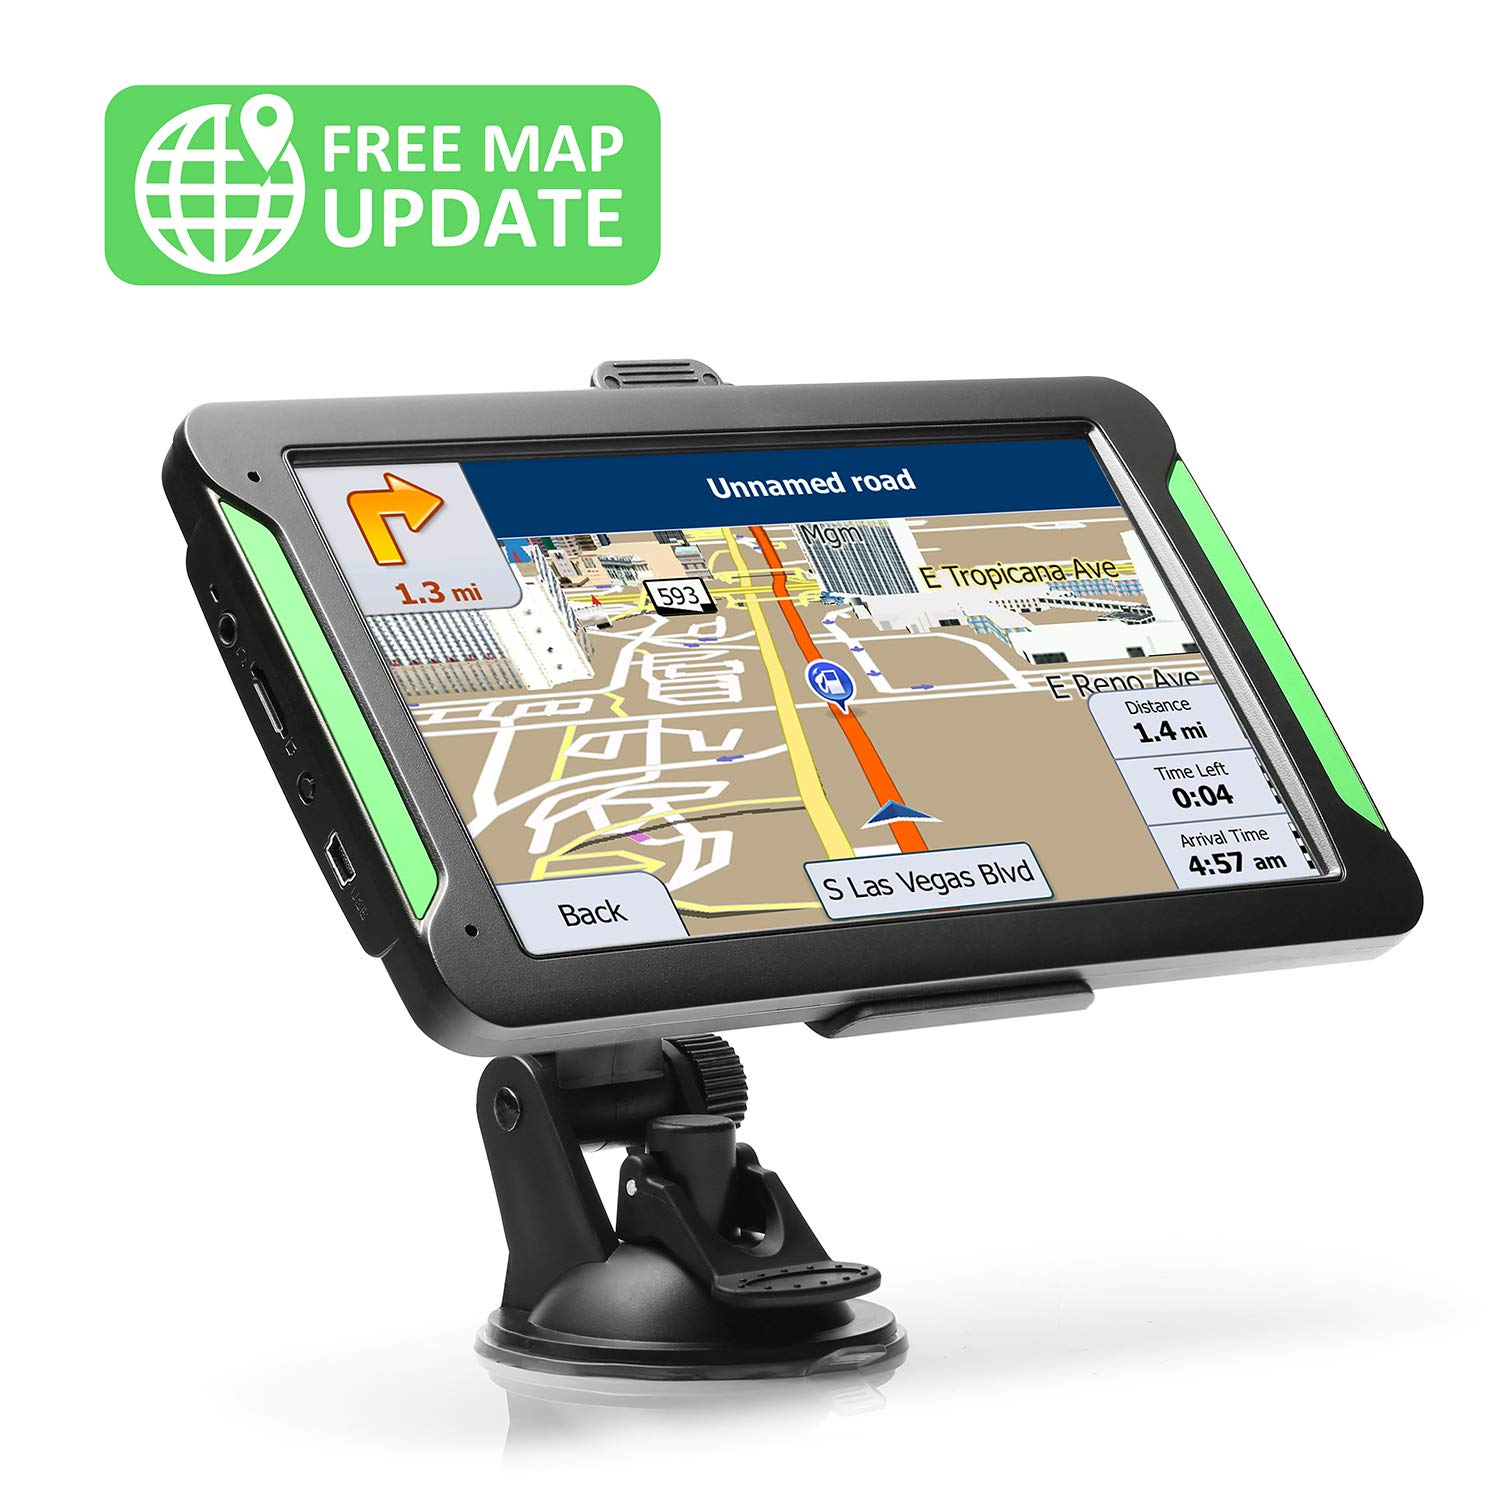 GPS Navigation for Car, LTTRBX 7'' Touch Screen 8GB Real Voice Spoken Turn-by-Turn Direction Reminding Navigation System for Cars, Vehicle GPS Satellite Navigator with Free Lifetime Map Update by Lttrbx